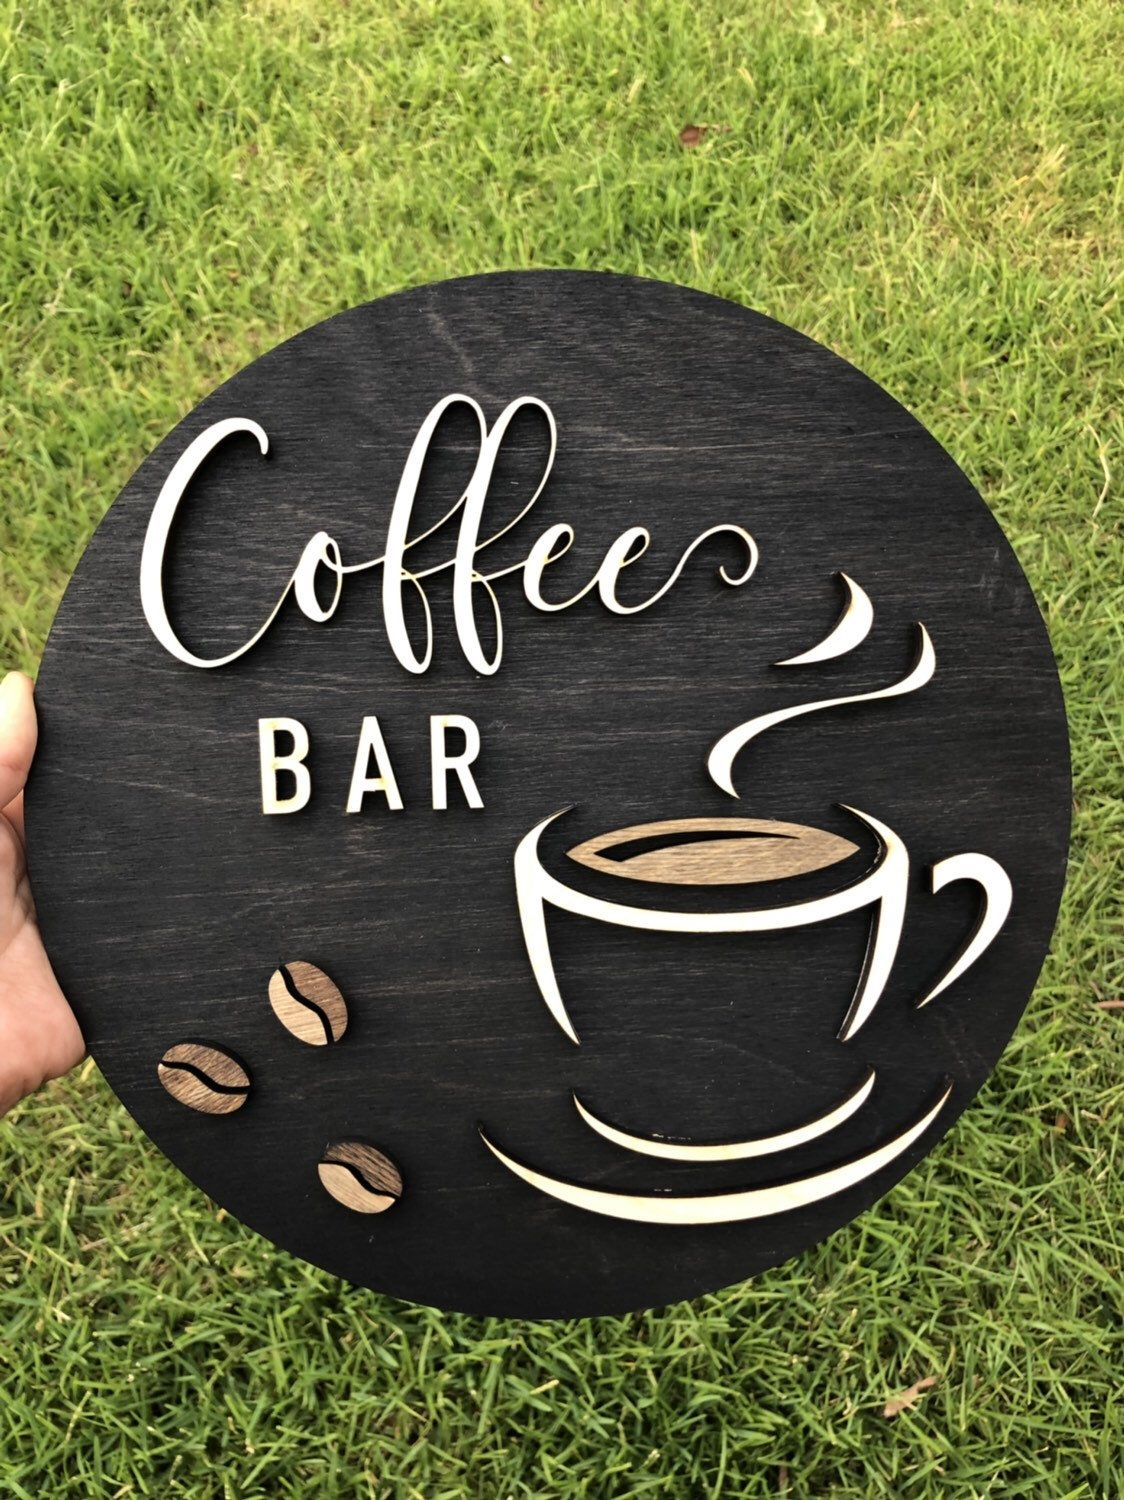 Coffee Bar 3D round sign - Coffee rustic wood sign - Kitchen decor - Coffee bar decor - Coffee Hinging - Coffee lover gift - 3D letters